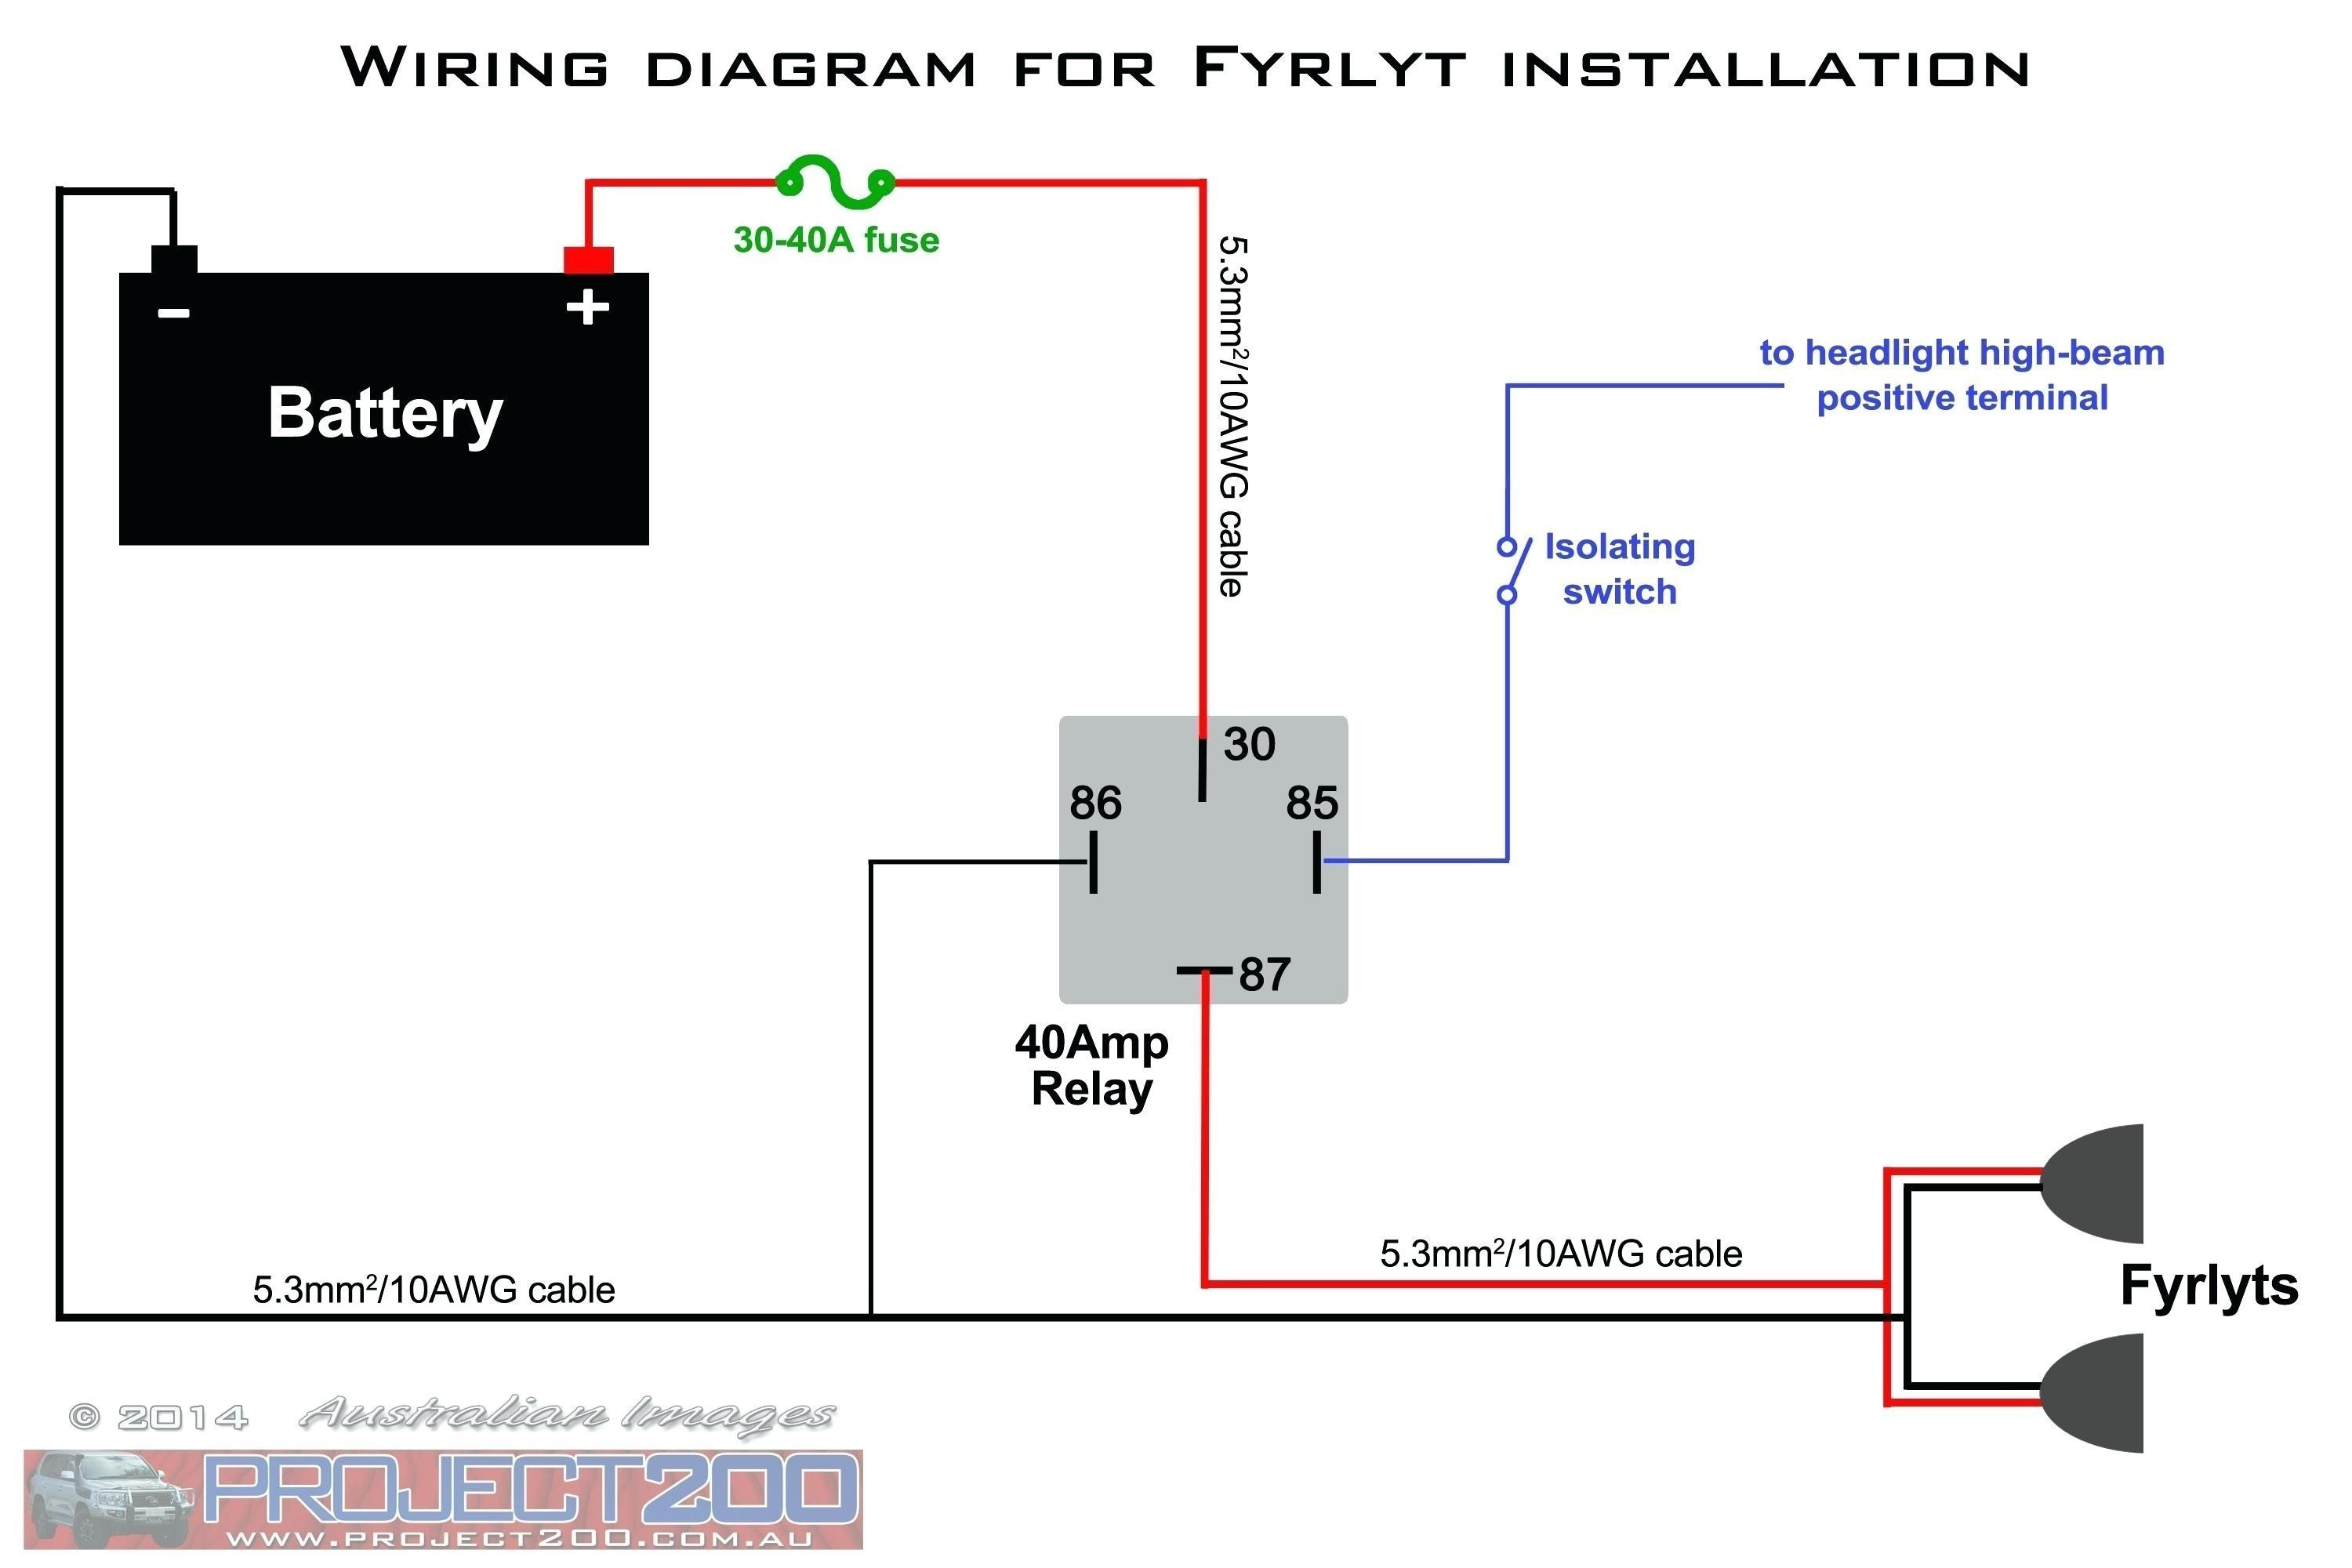 591 Wiring Diagrams Recessed Lights | Wiring Diagram Image | Wiring LibraryWiring Library